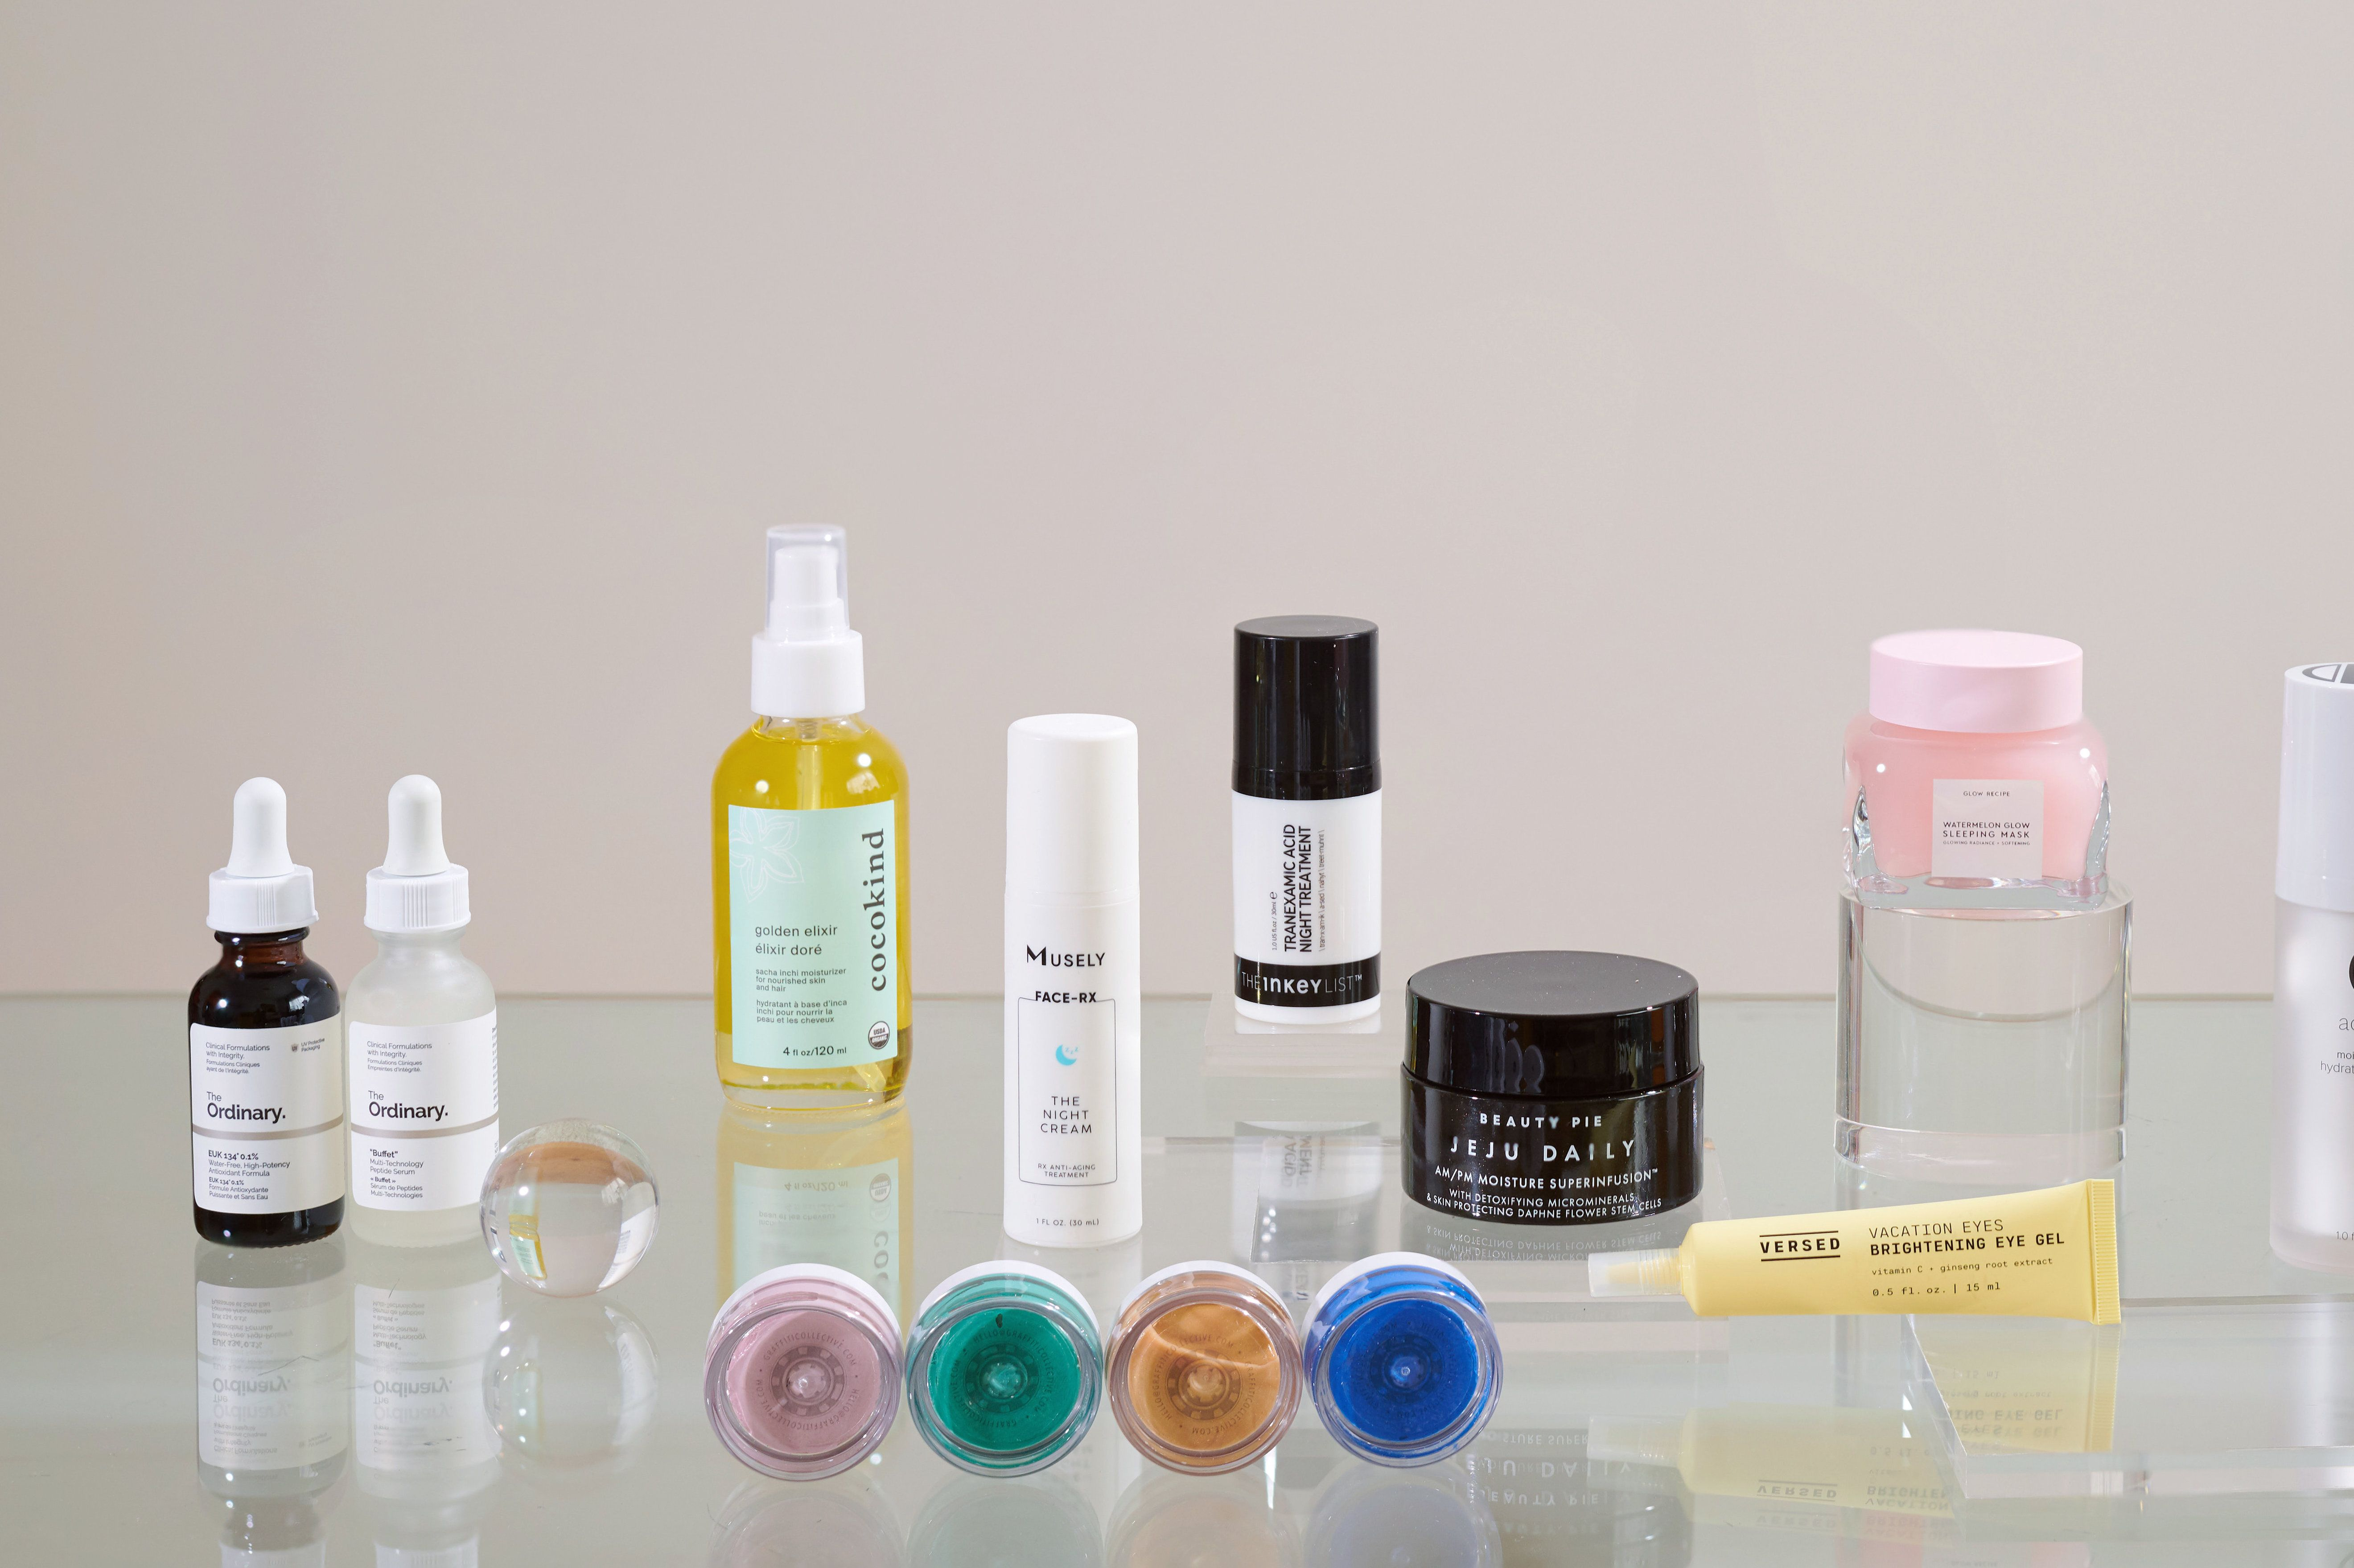 The 20 Luxury Face Cream Luxury Face Cream Face Cream Beauty Products Drugstore